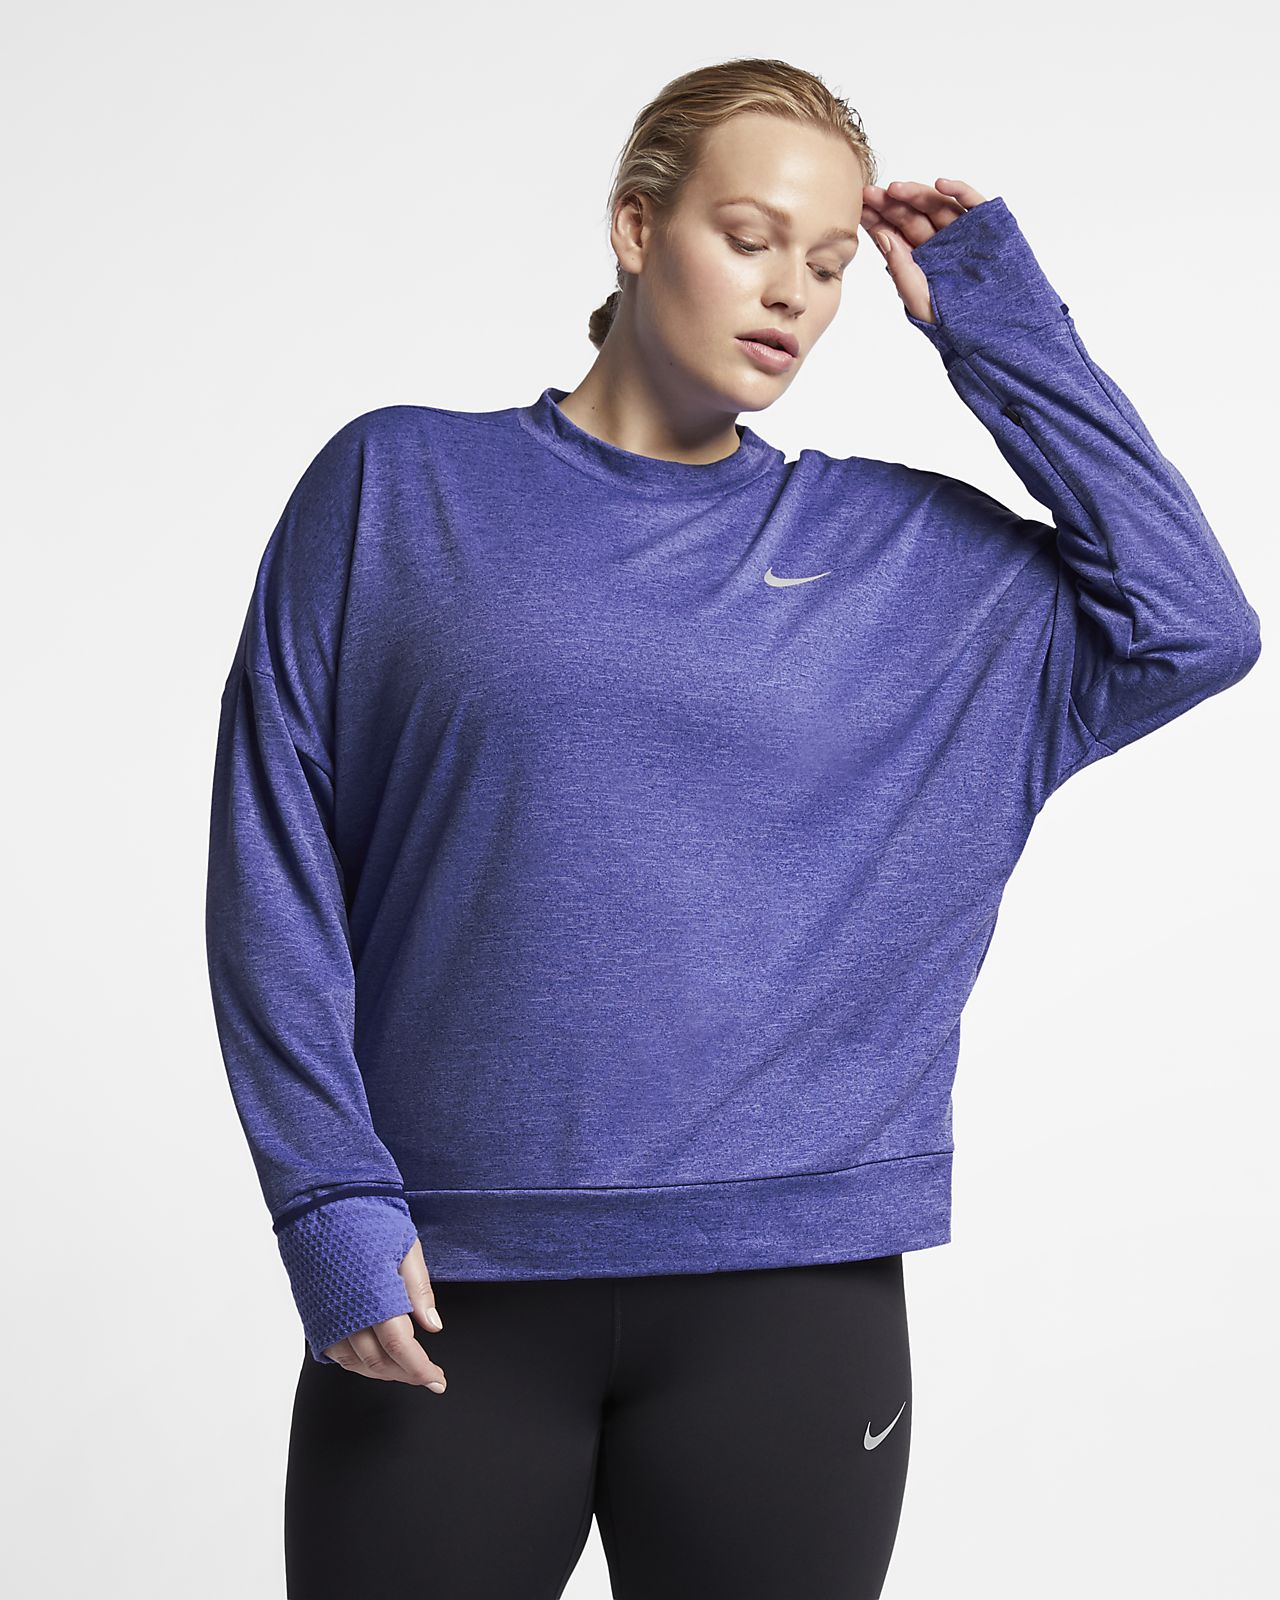 1957e39f3a5c6 Nike Sphere Element Women s Long-Sleeve Running Top (Plus Size ...